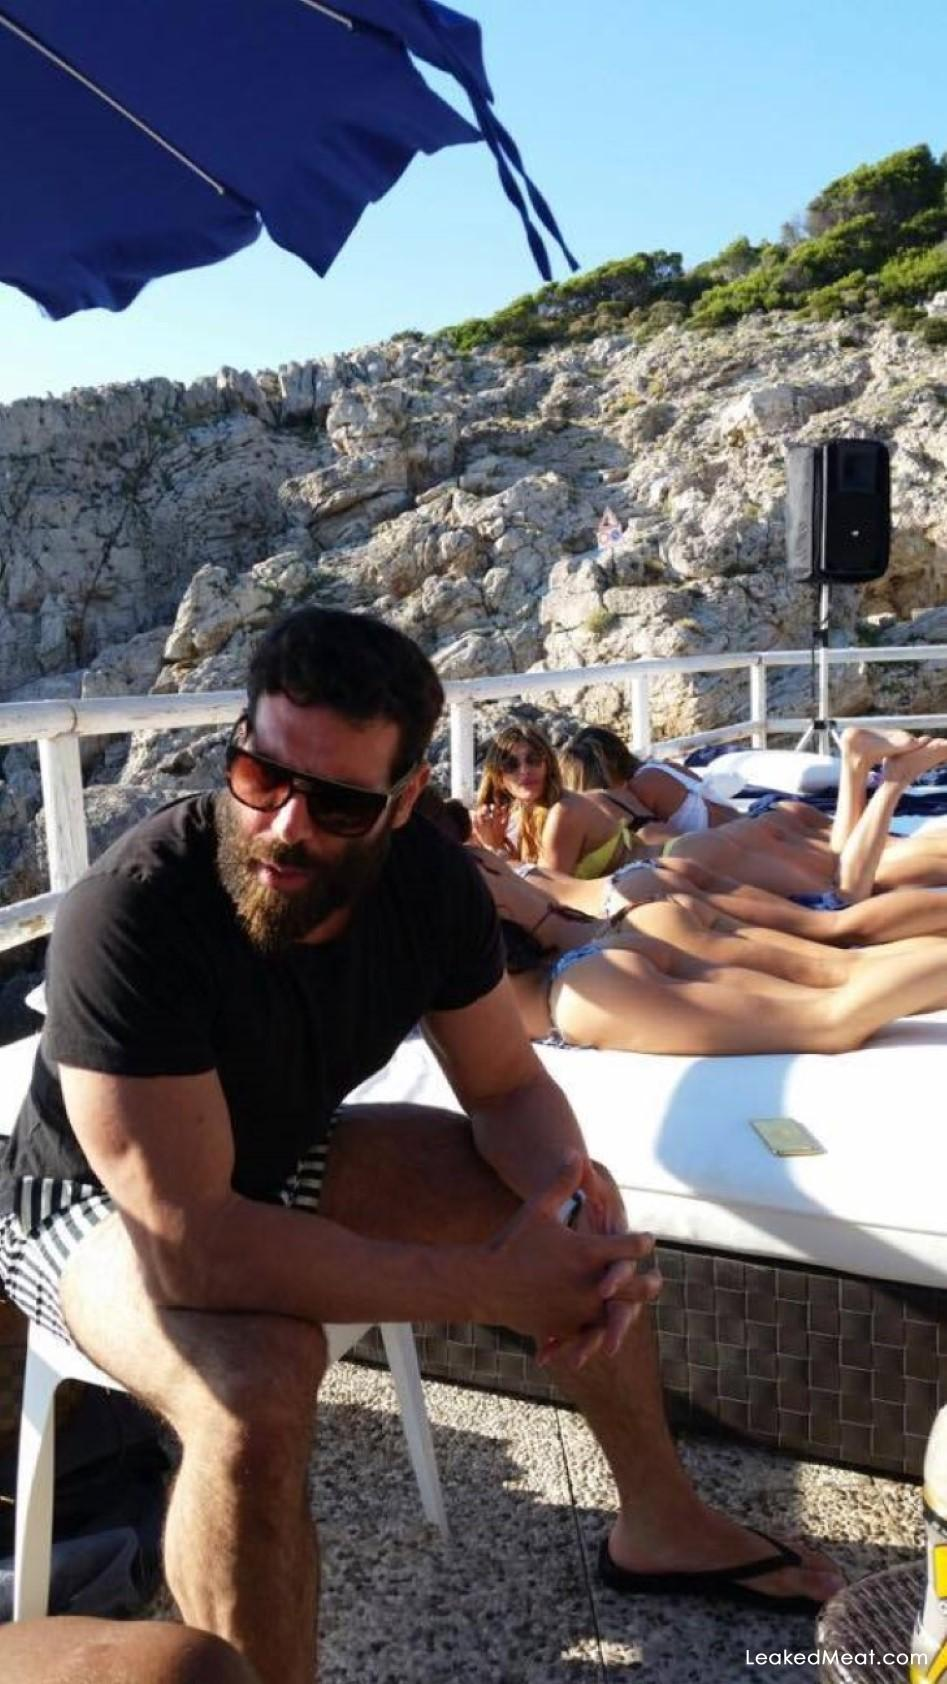 Dan Bilzerian on vacation naked girls